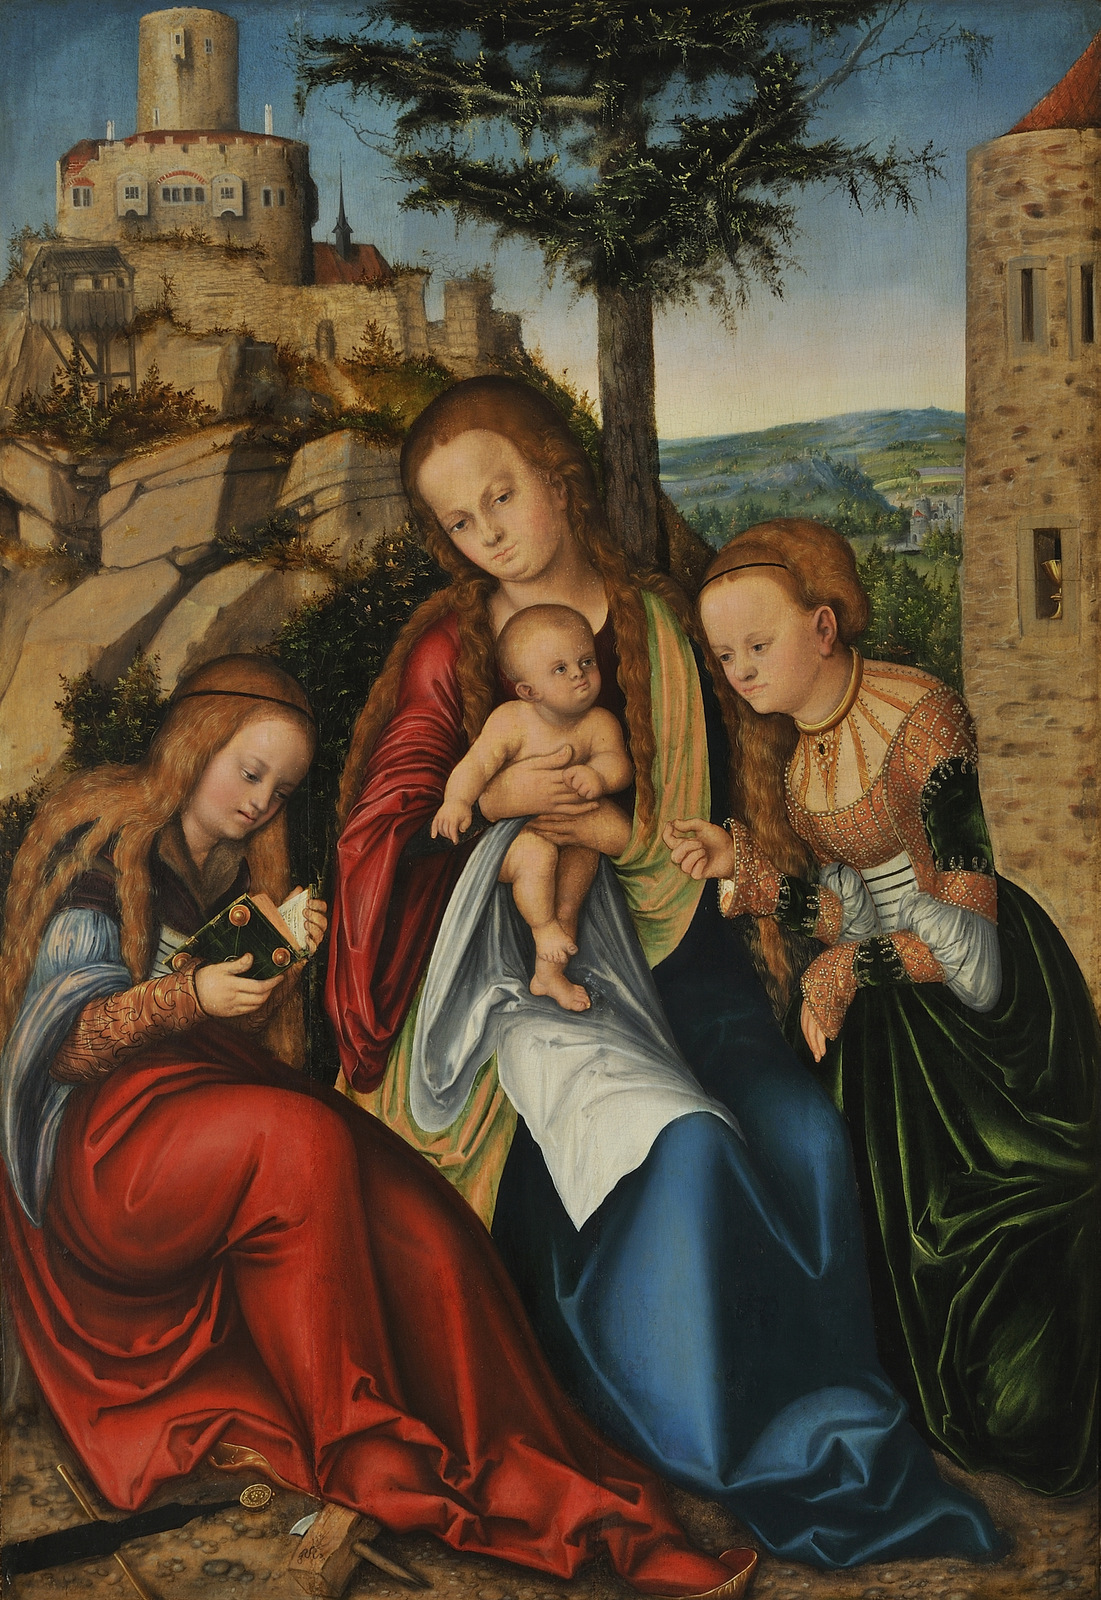 The Virgin and Child with Saint Barbara and Saint Catherine of Alexandria, Lucas Cranach the Elder, c. 1520